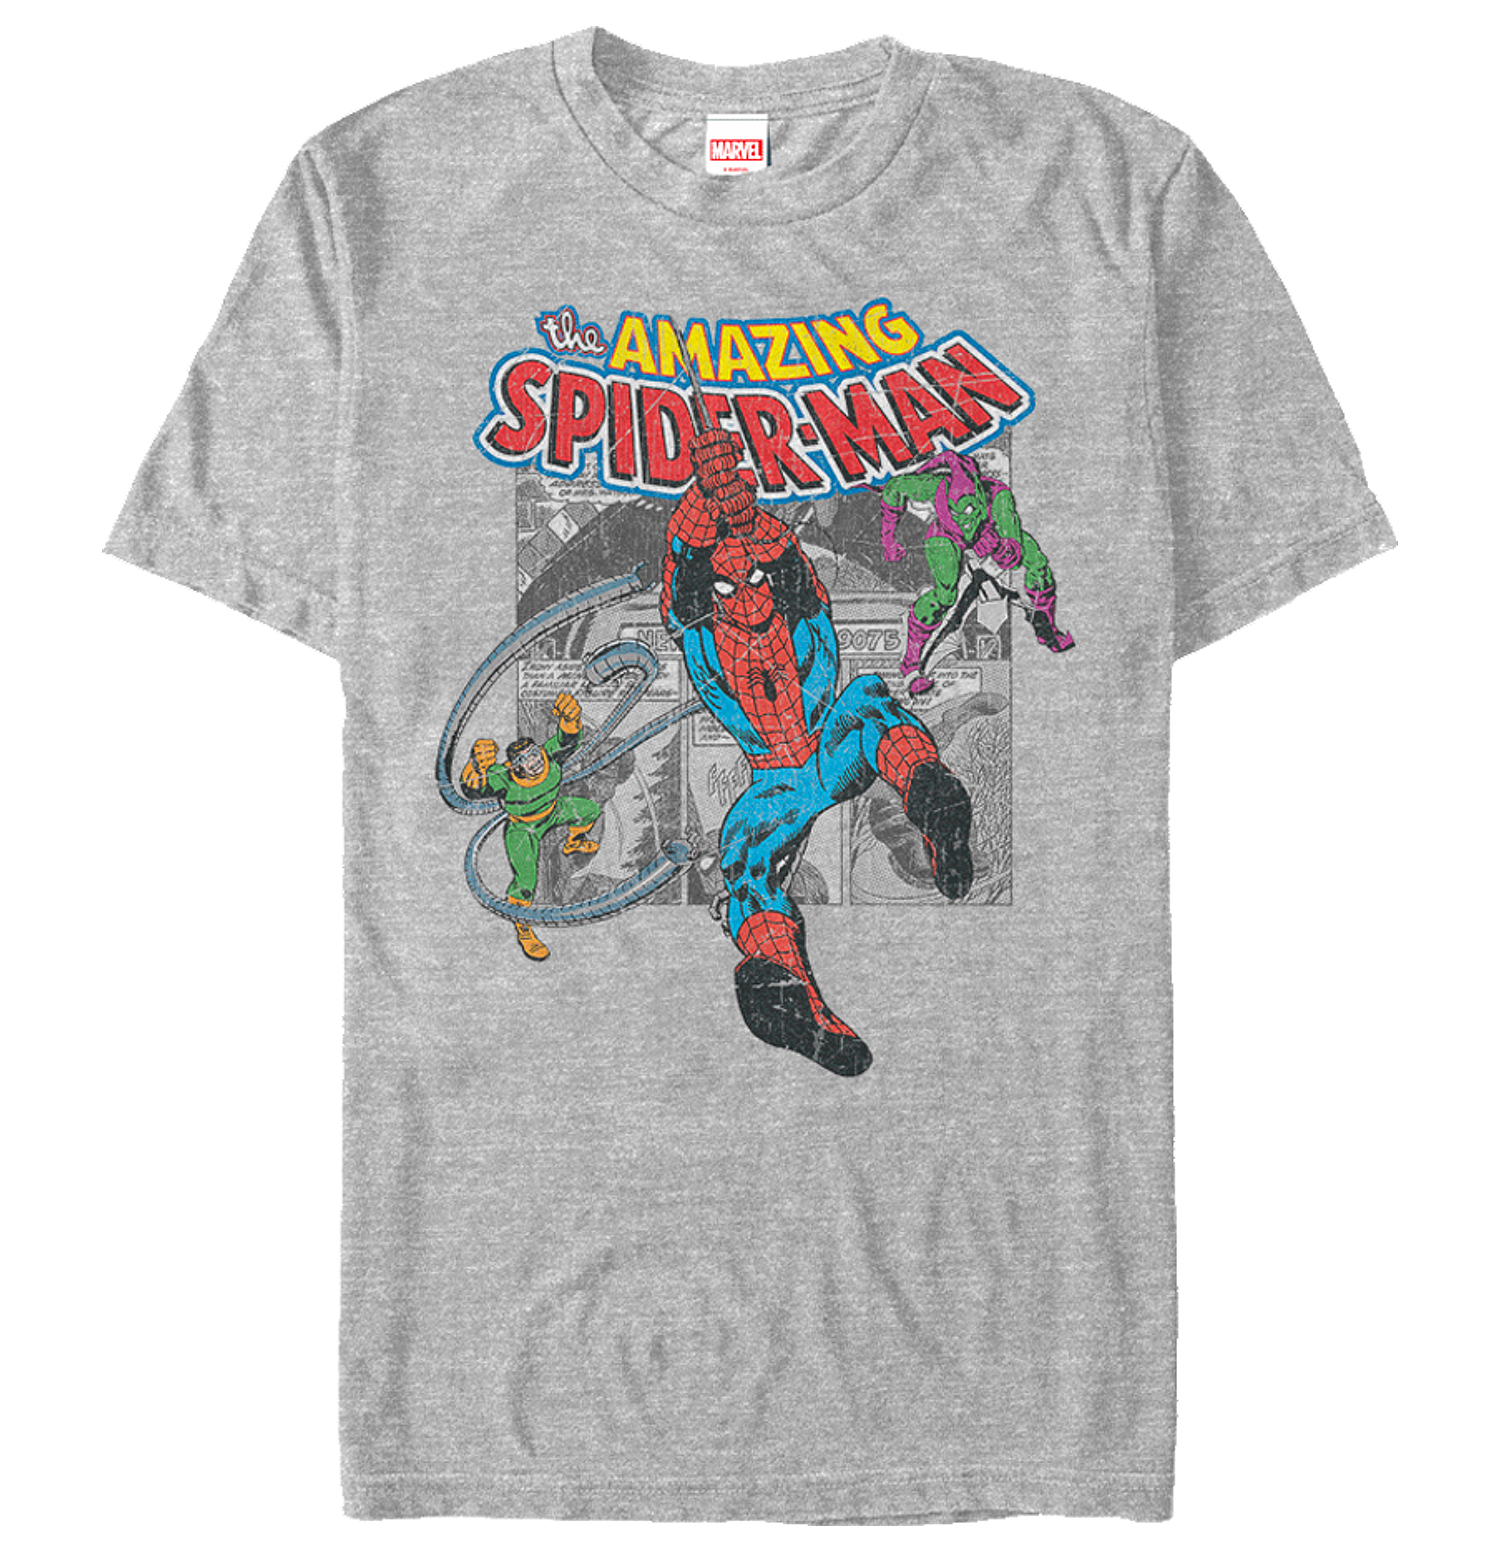 air-jordan-1-origin-story-spiderman-sneaker-tee-shirt-11